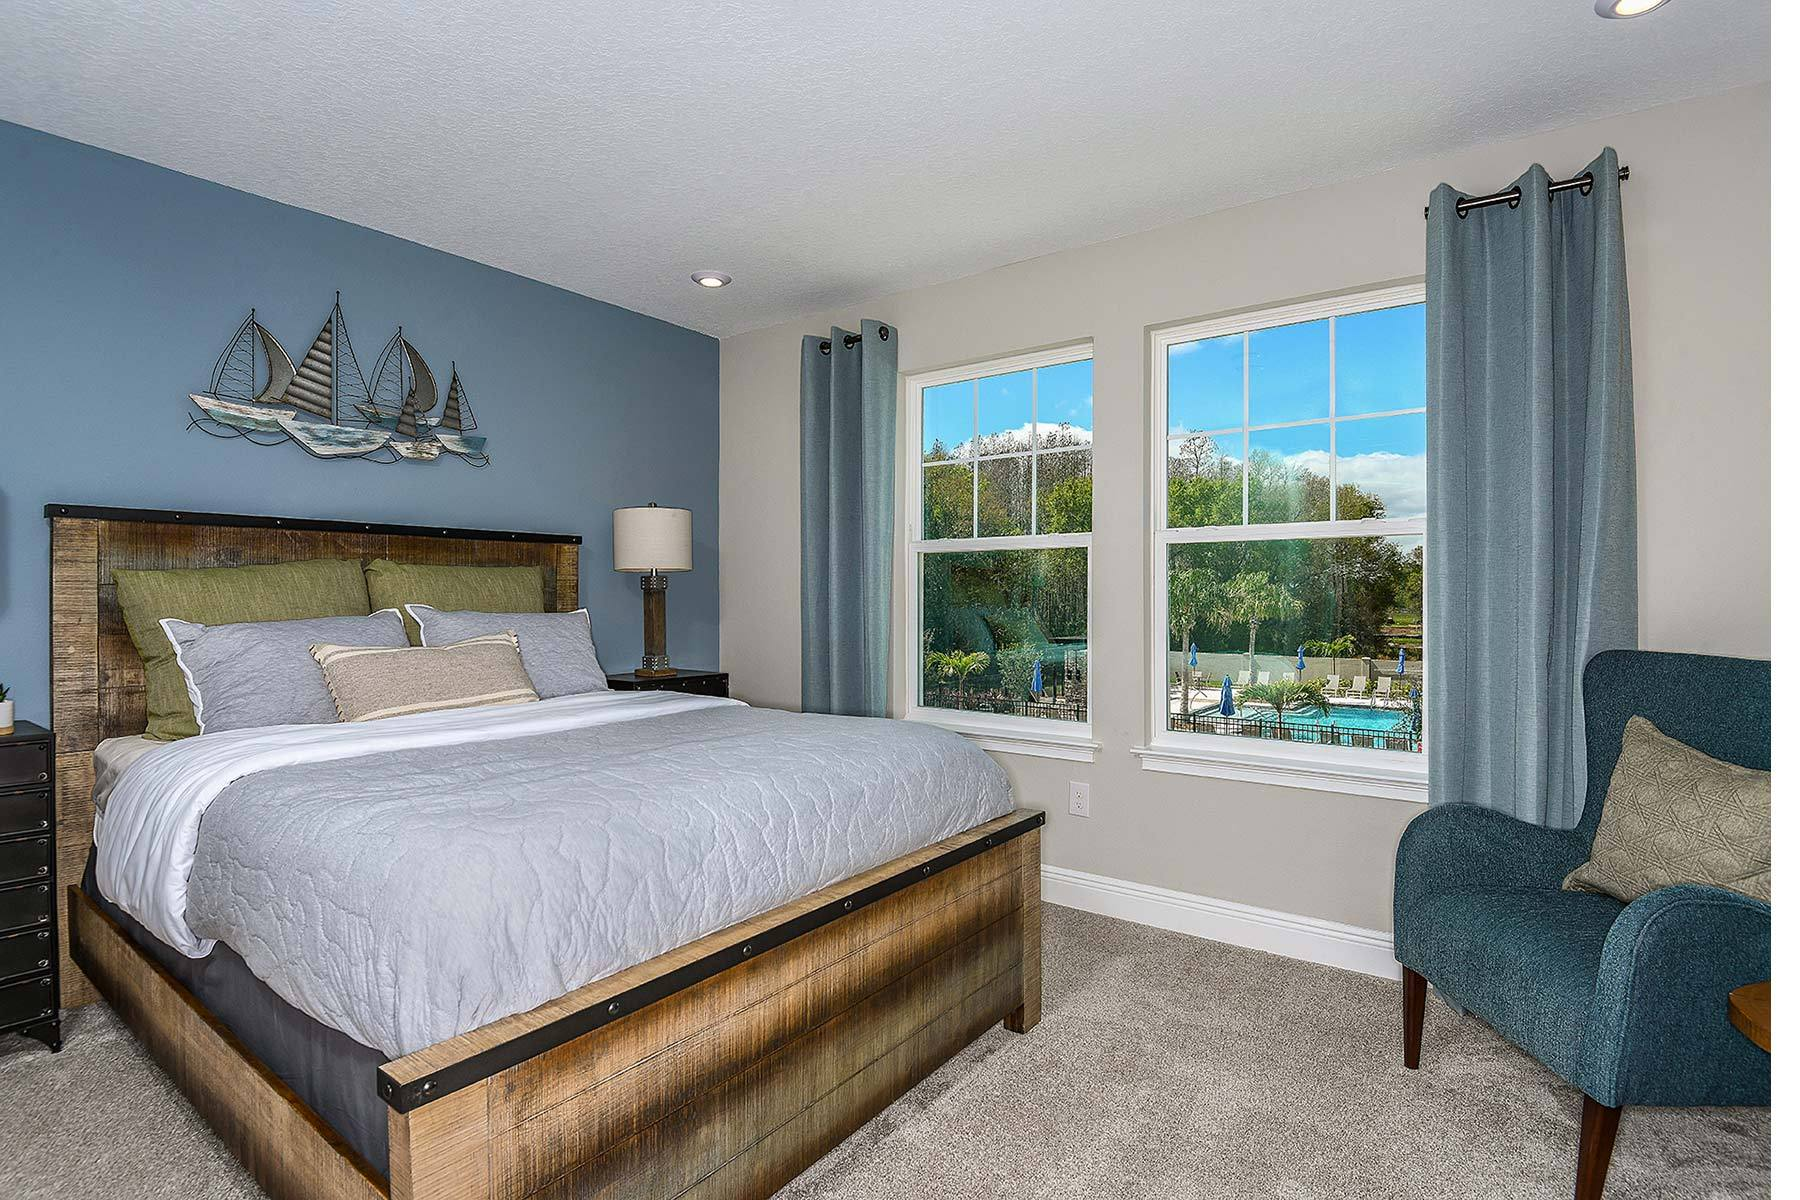 Bedroom featured in the Ormond By Mattamy Homes in Tampa-St. Petersburg, FL